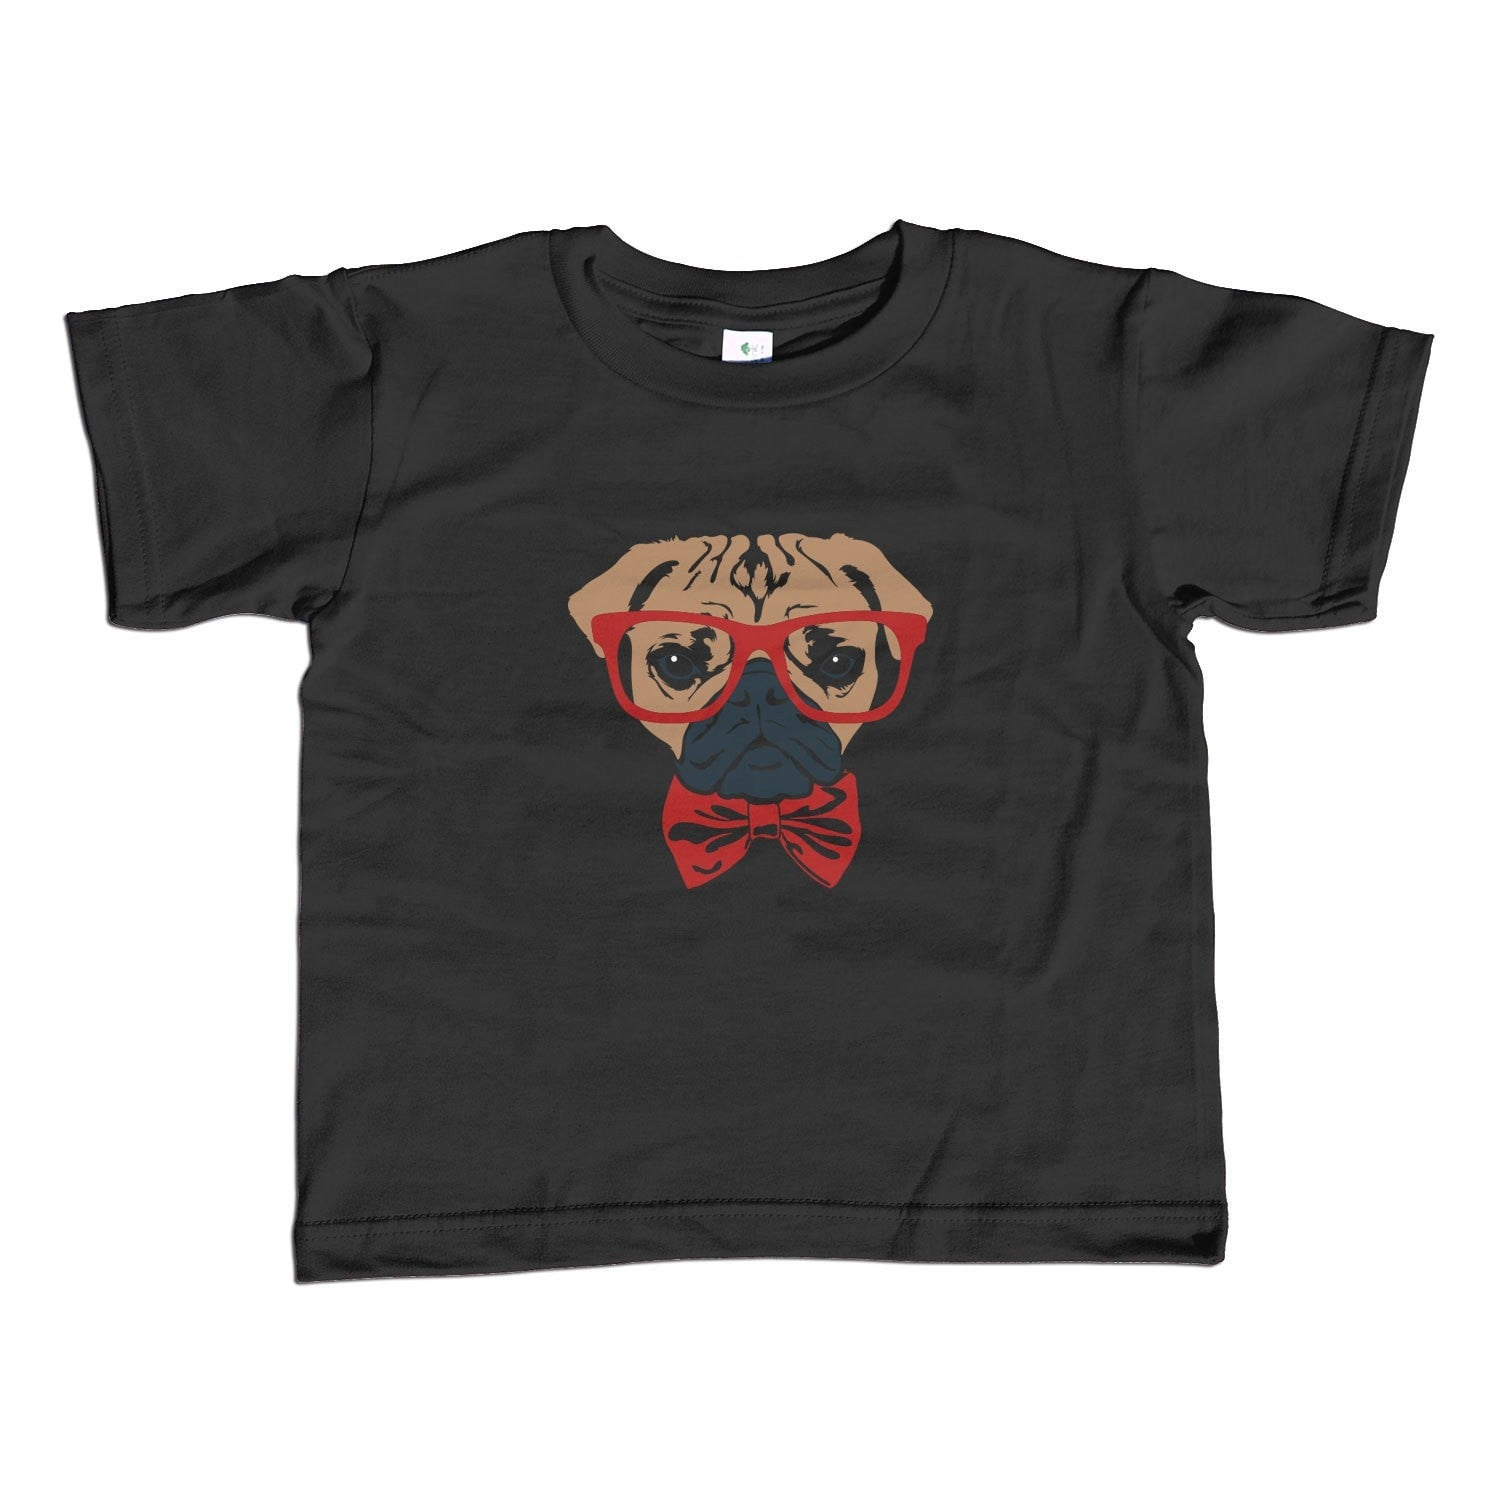 46f21cdc1 Boy's Bowtie and Glasses on a Pug T-Shirt Hipster Pug – Boredwalk